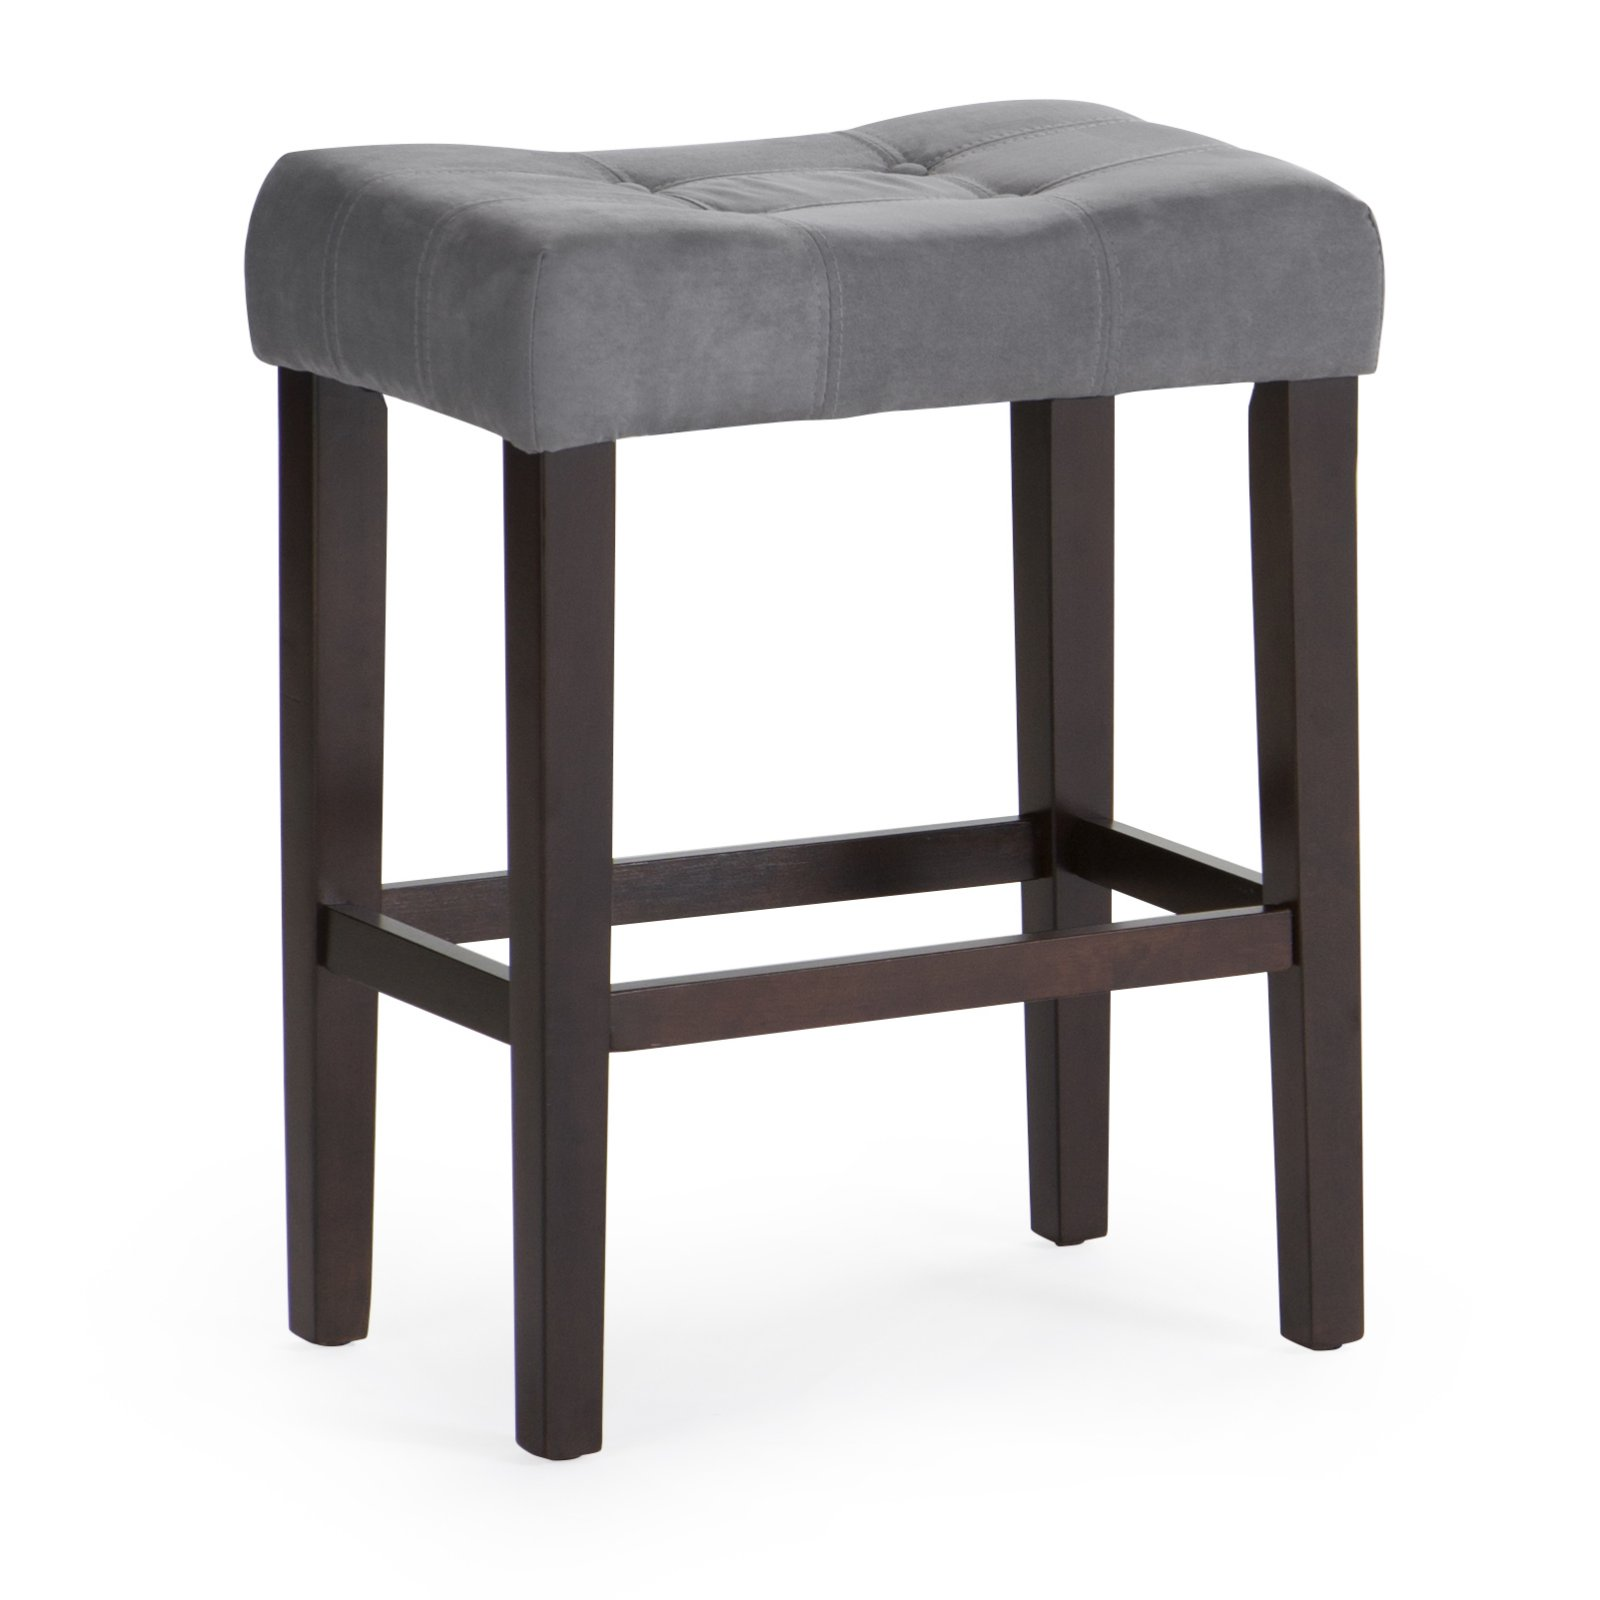 Finley Home Palazzo 26 in. Saddle Counter Stool